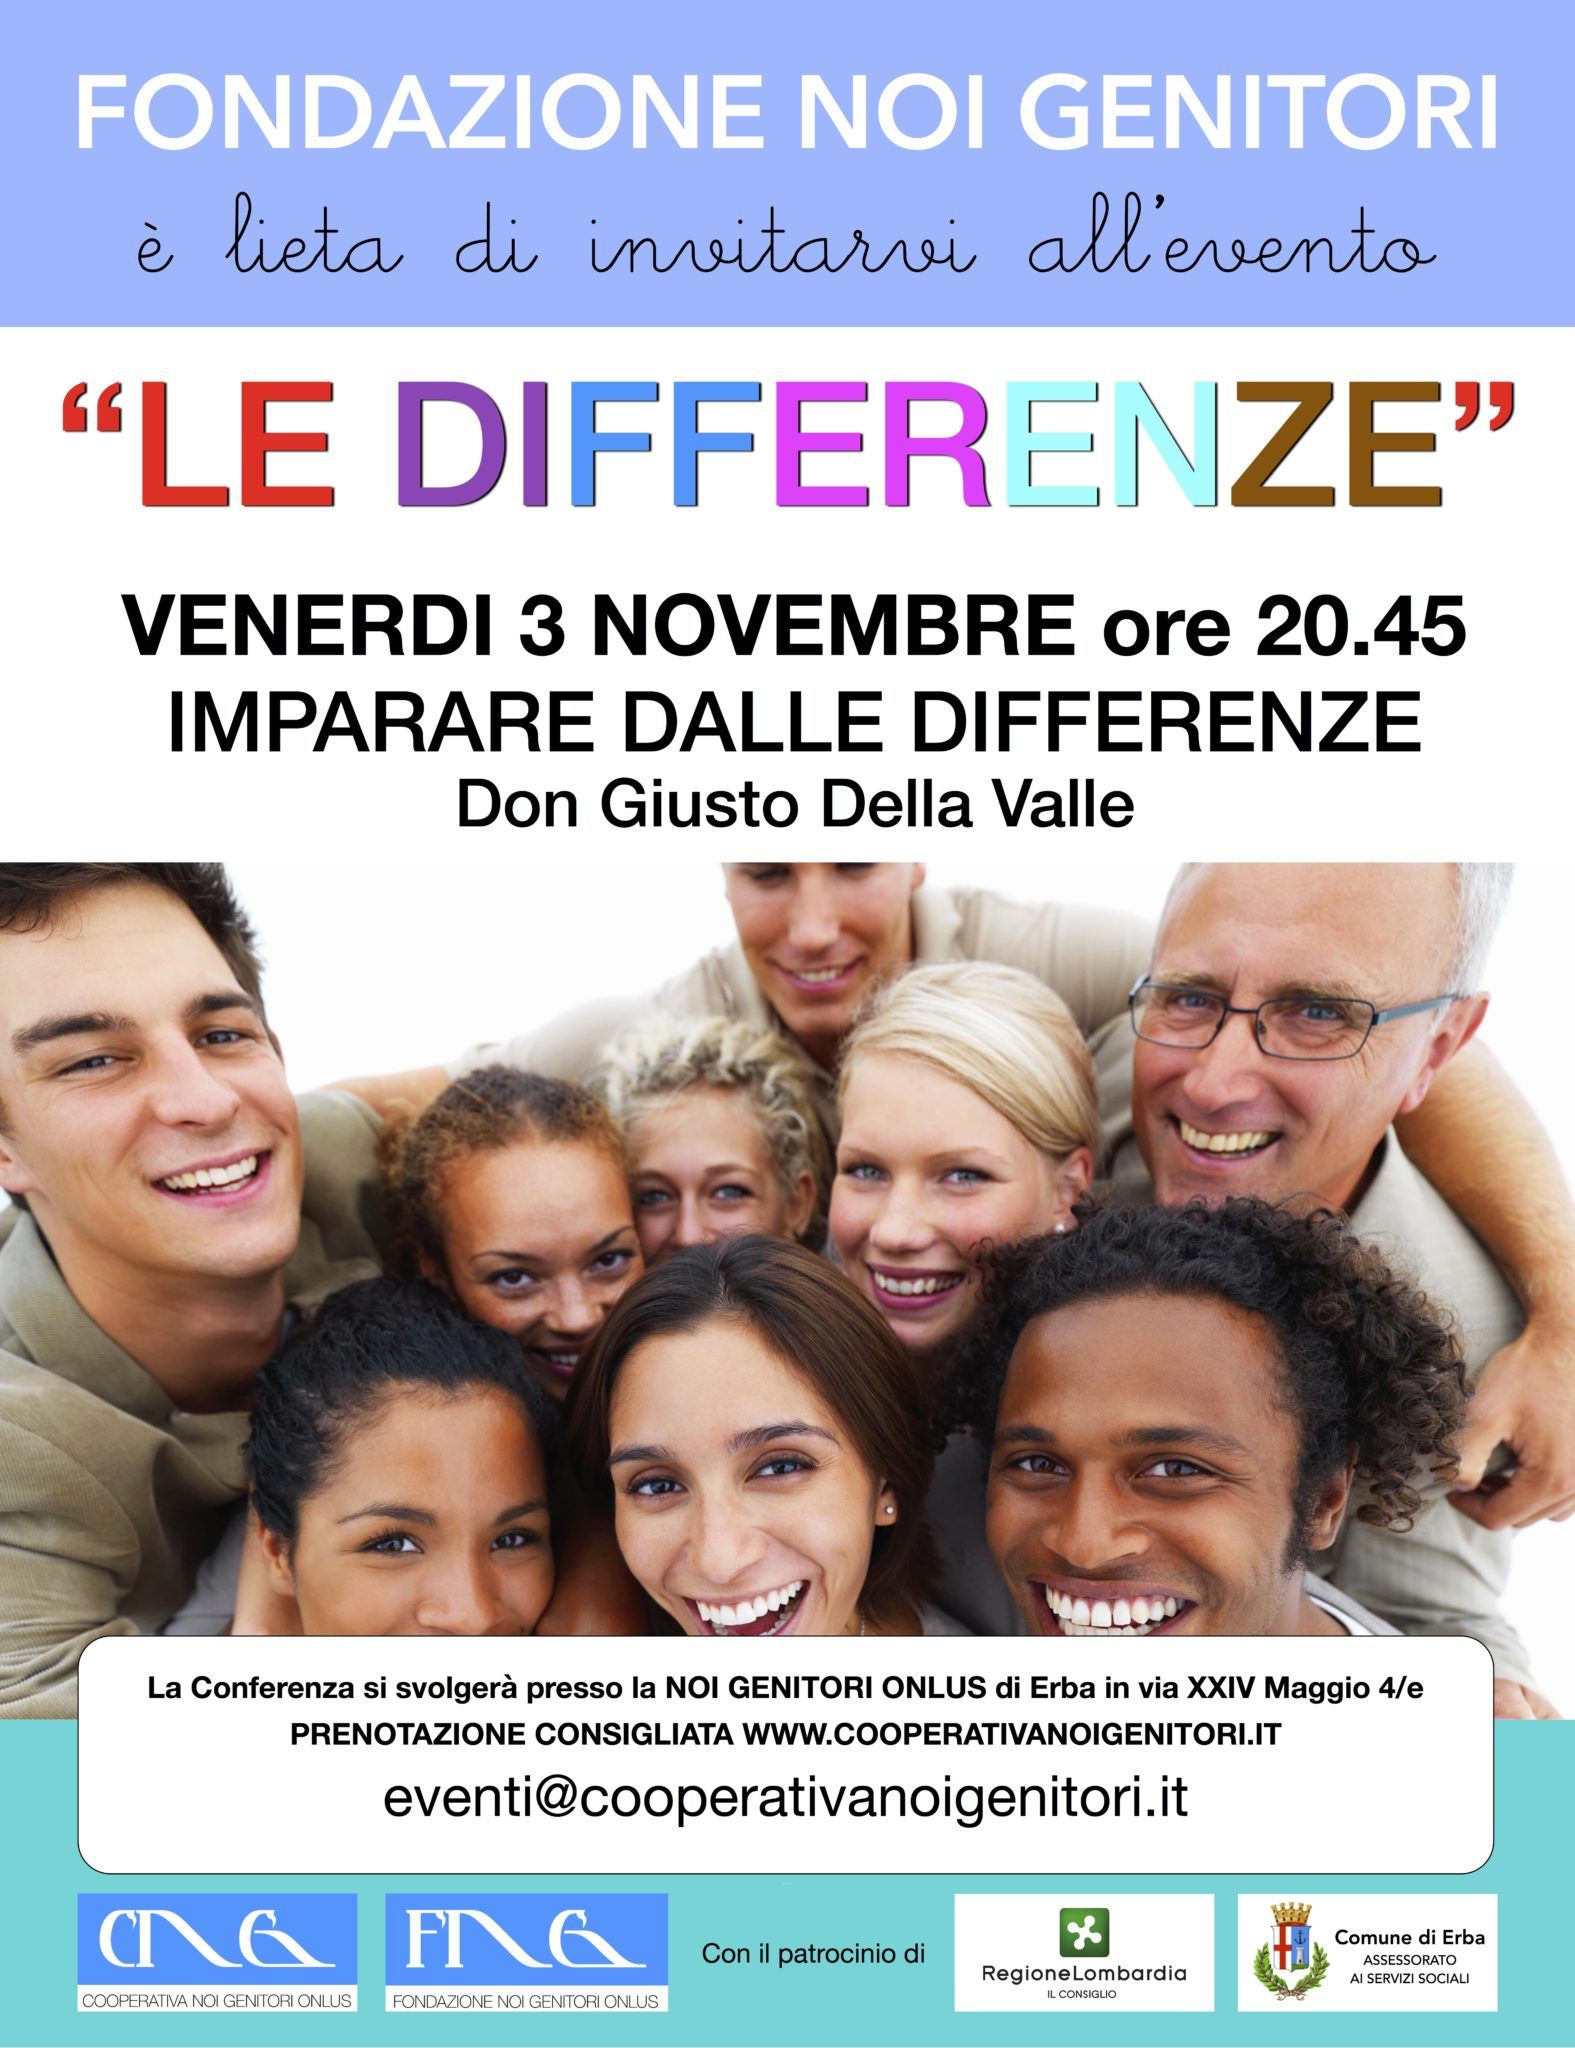 6 imparare dalle differenze